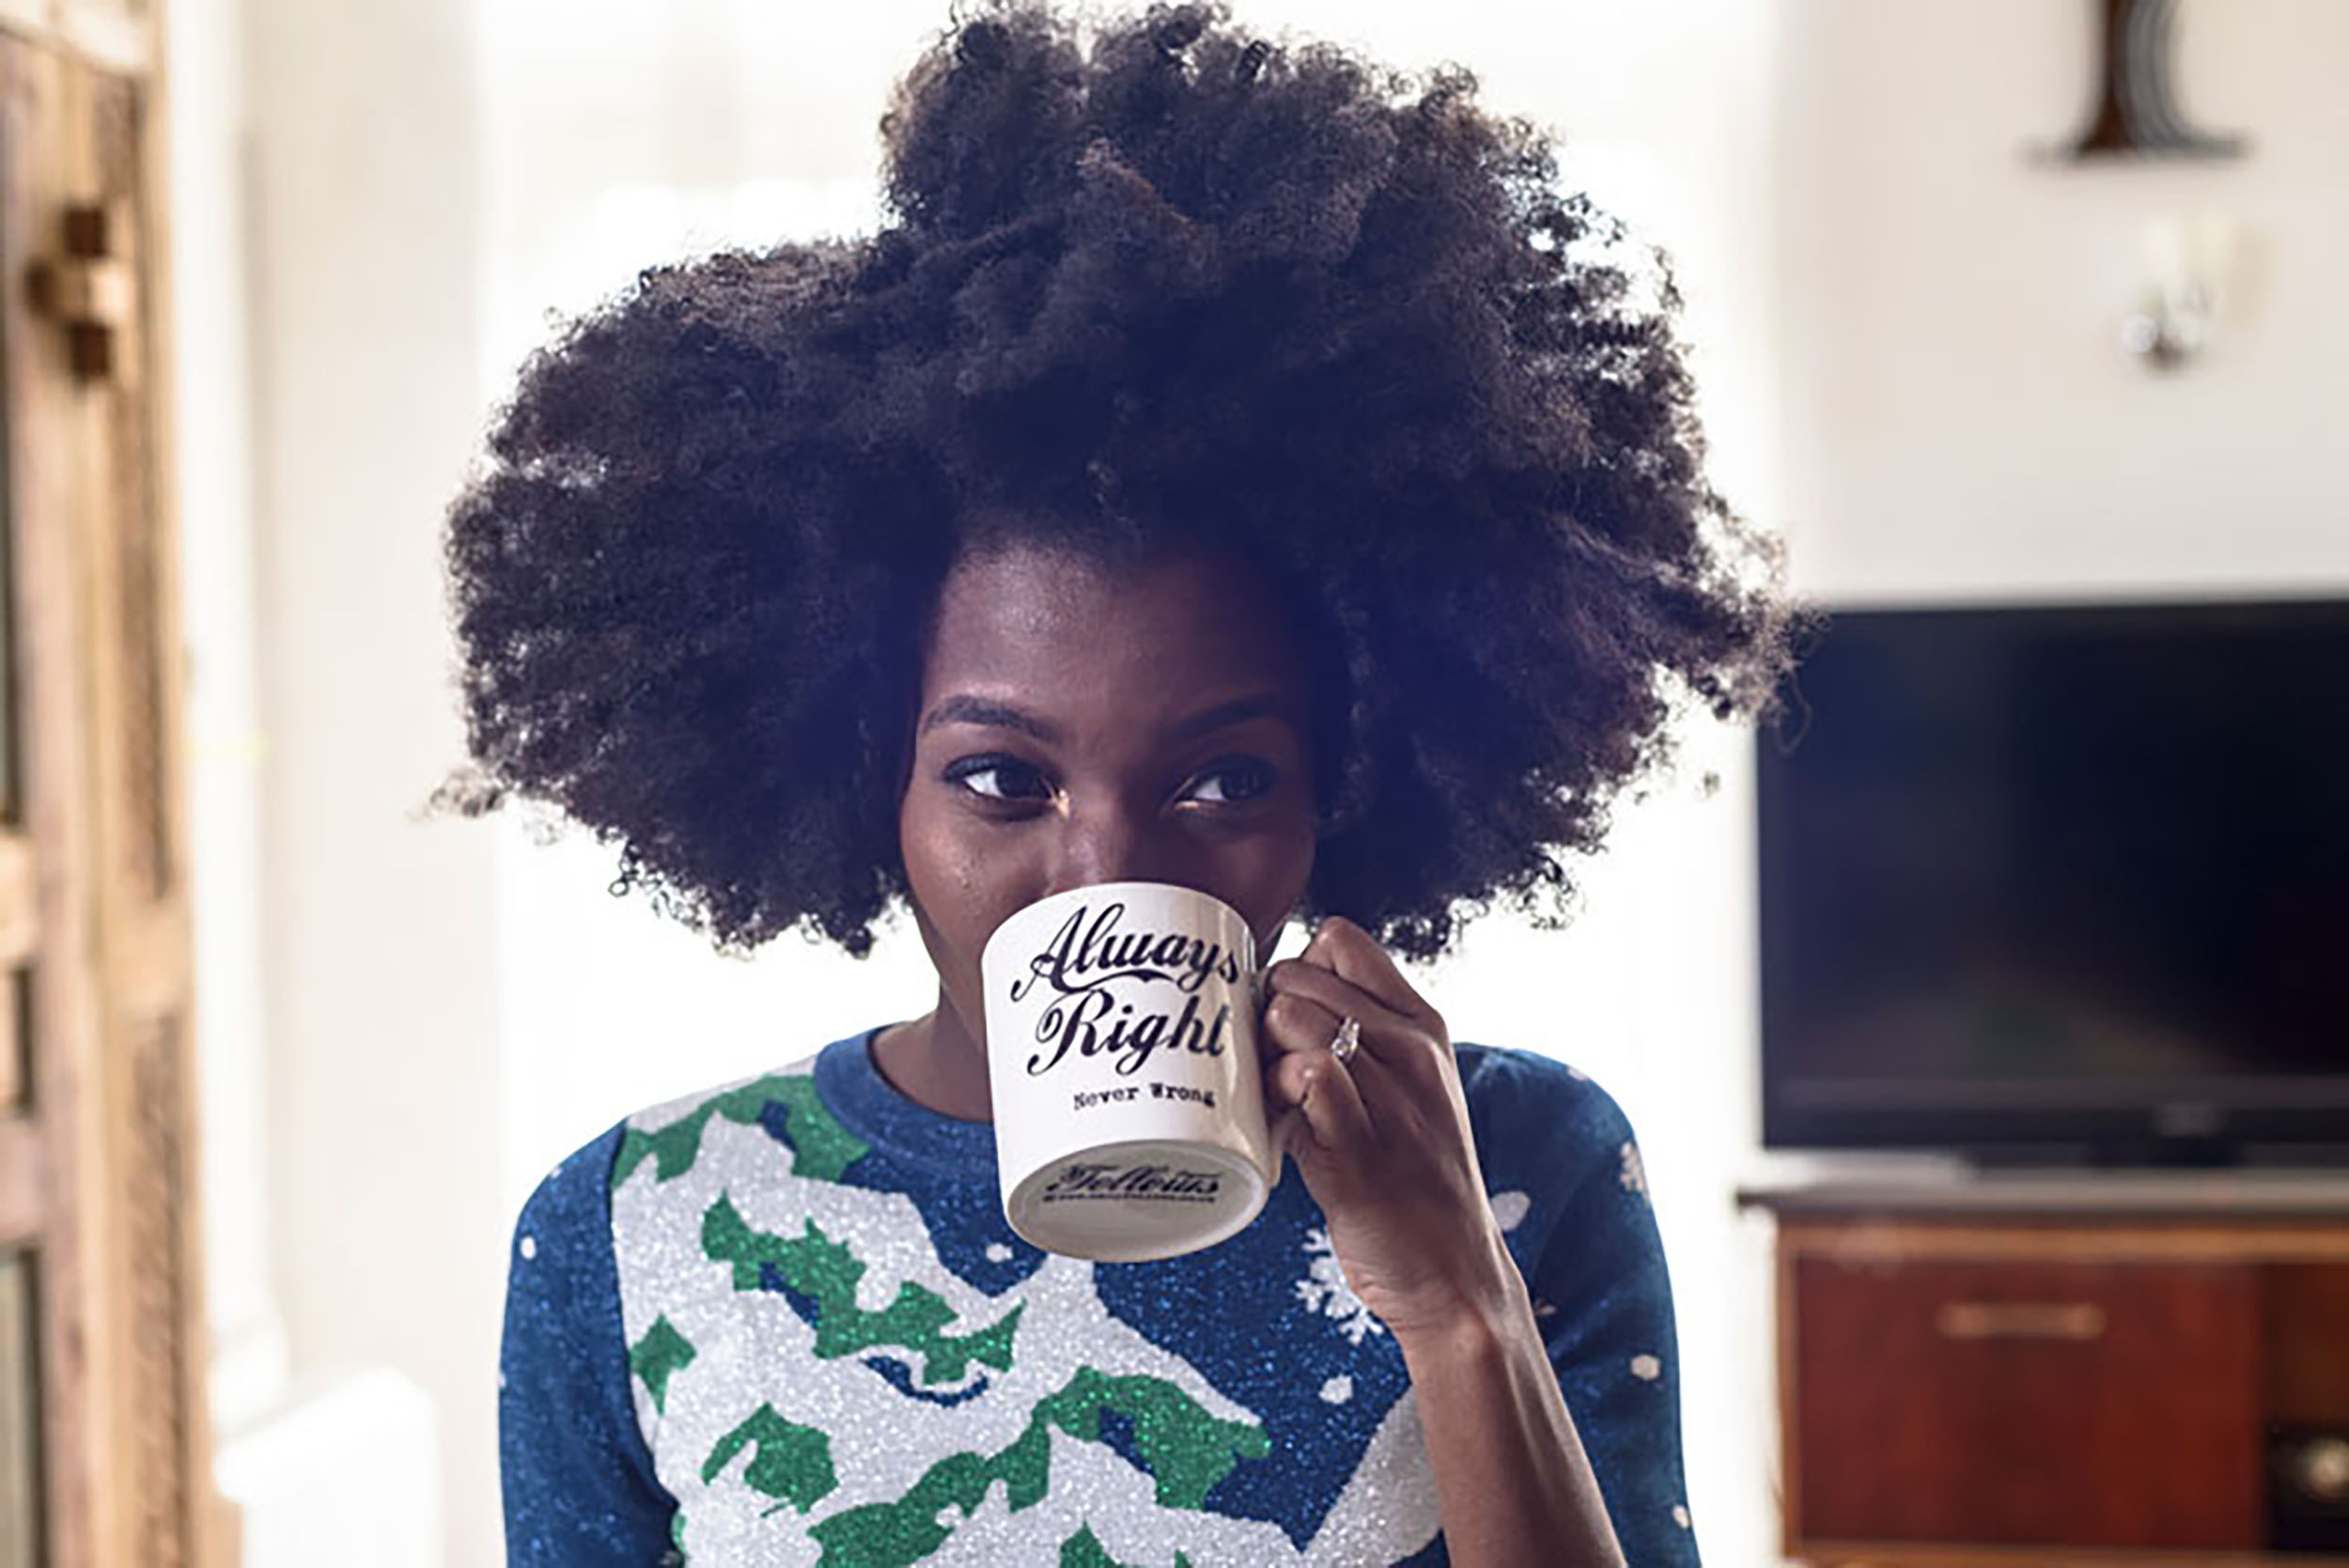 Freddie Harrel for Habitat Voyeur